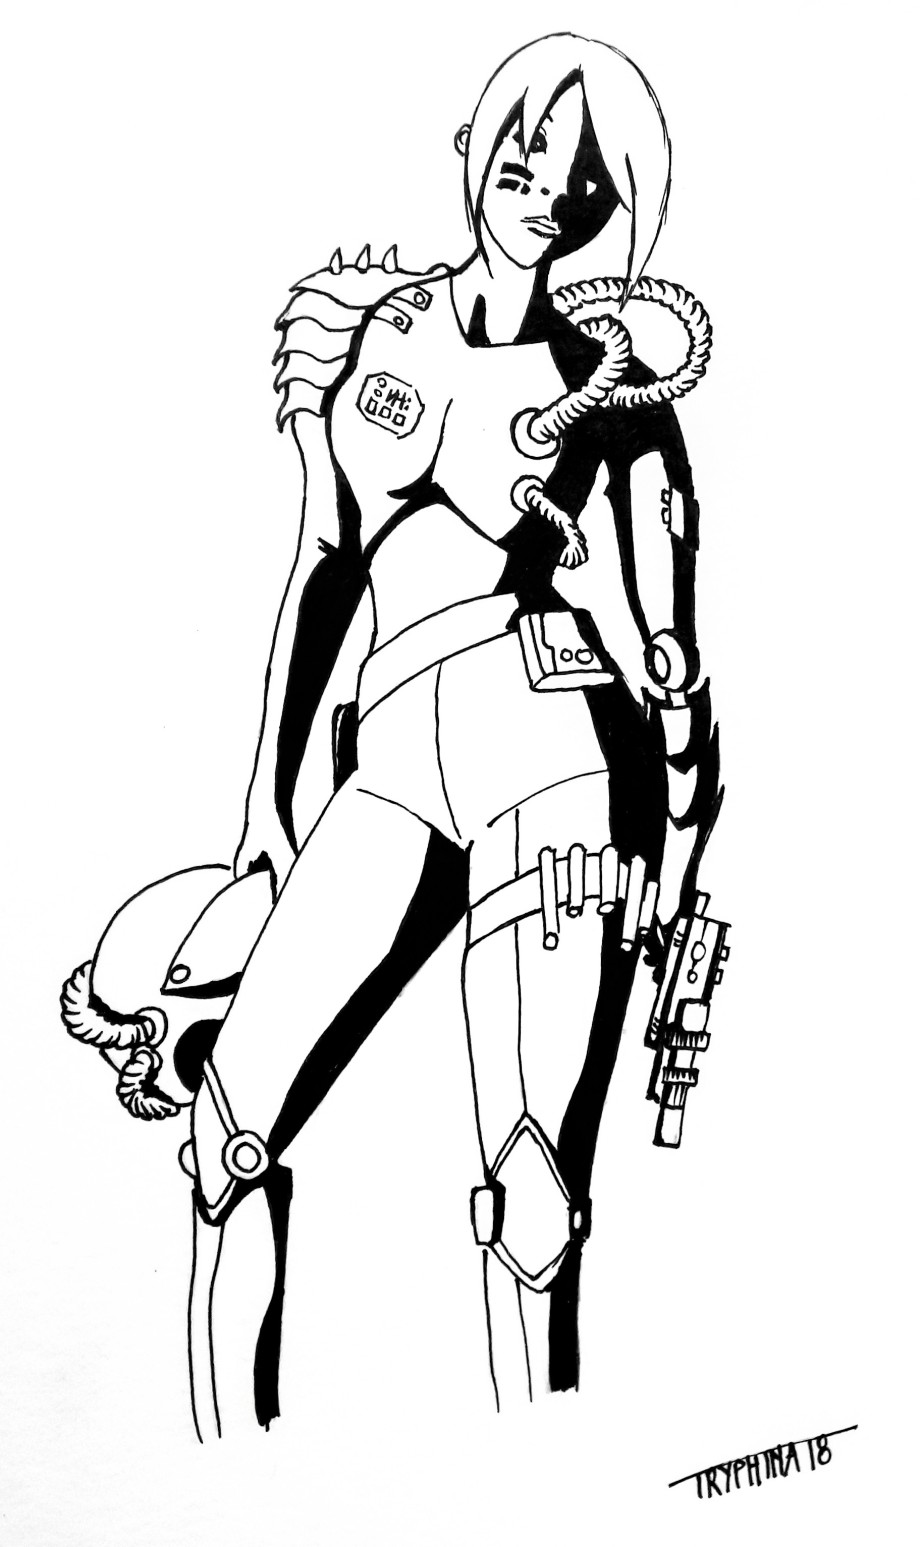 a cyberpunk bounty hunter with her helmet in one hand and a gun in the other.